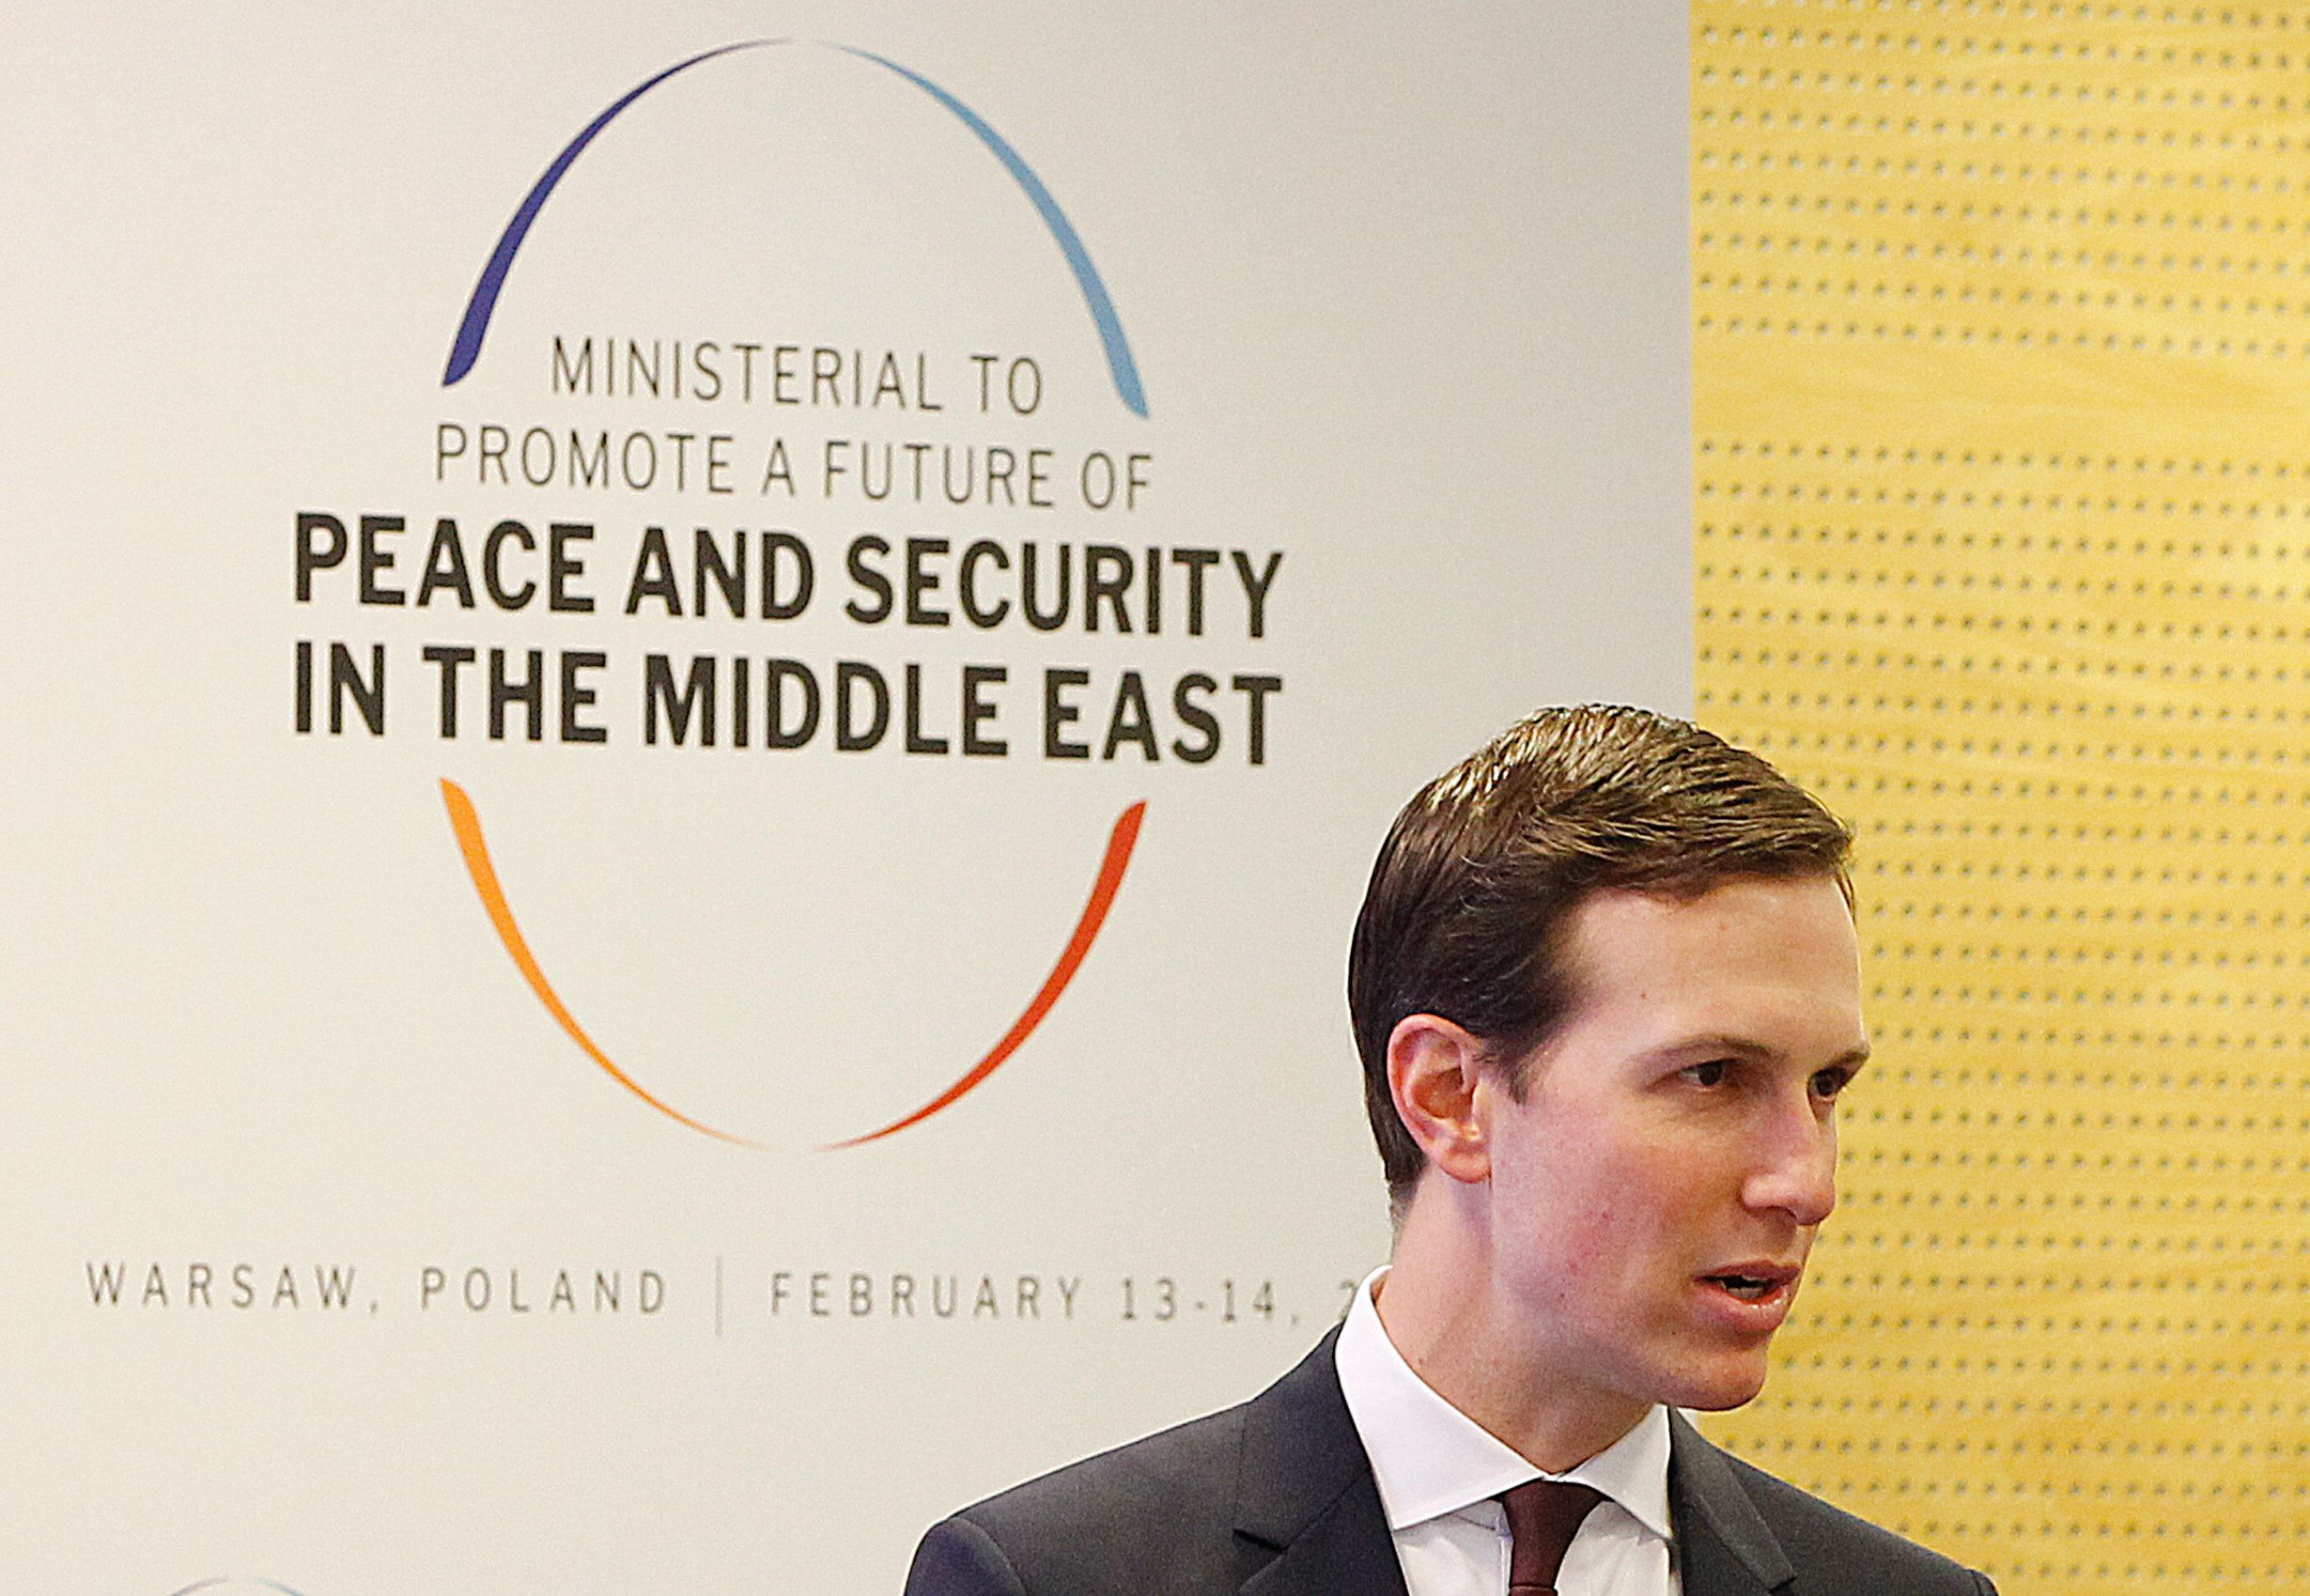 White House Senior Adviser Jared Kushner attends at a conference on Peace and Security in the Middle East in Warsaw, Poland, Thursday, Feb. 14, 2019. The Polish capital is host for a two-day international conference, co-organized by Poland and the United States. (AP Photo/Czarek Sokolowski)